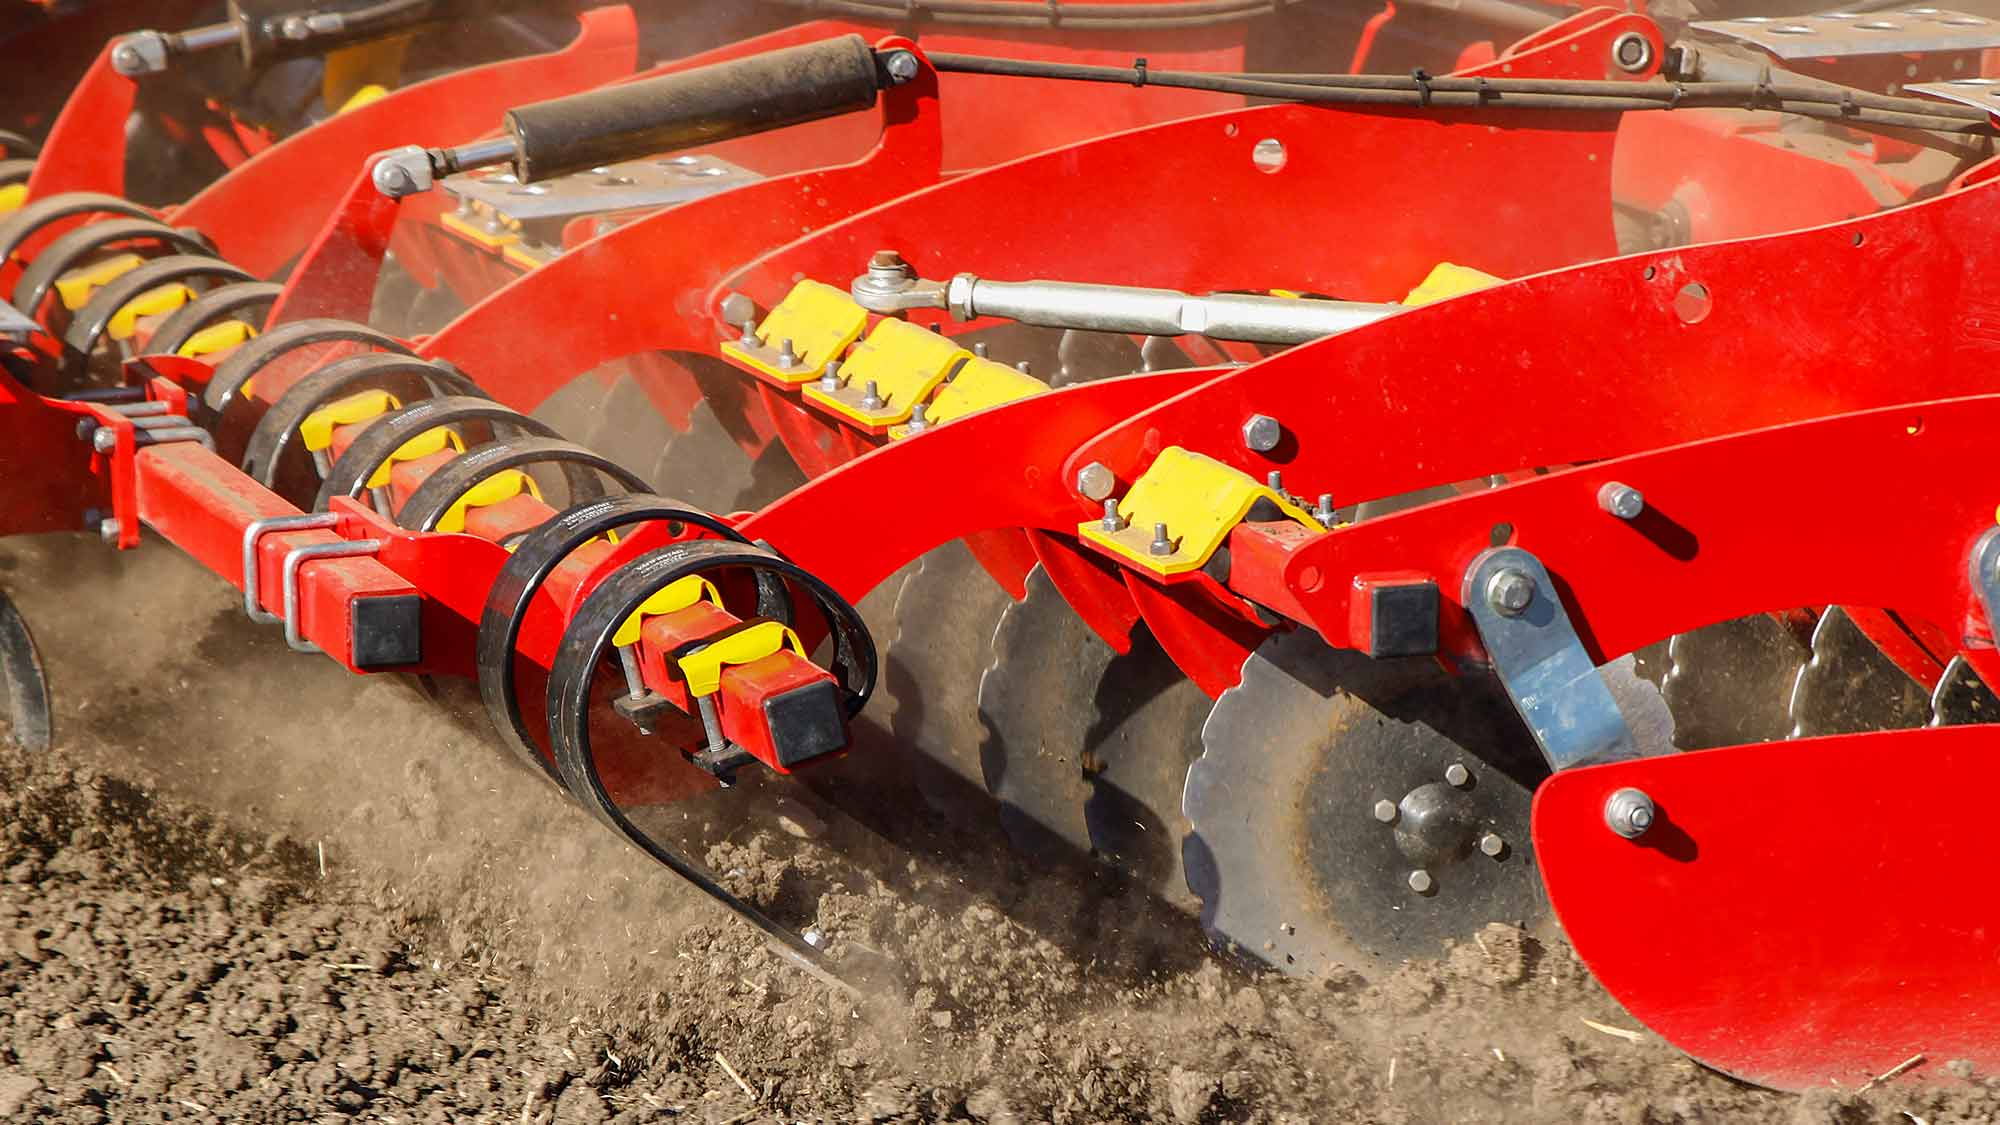 Väderstad Seed drill spirit front tools in field